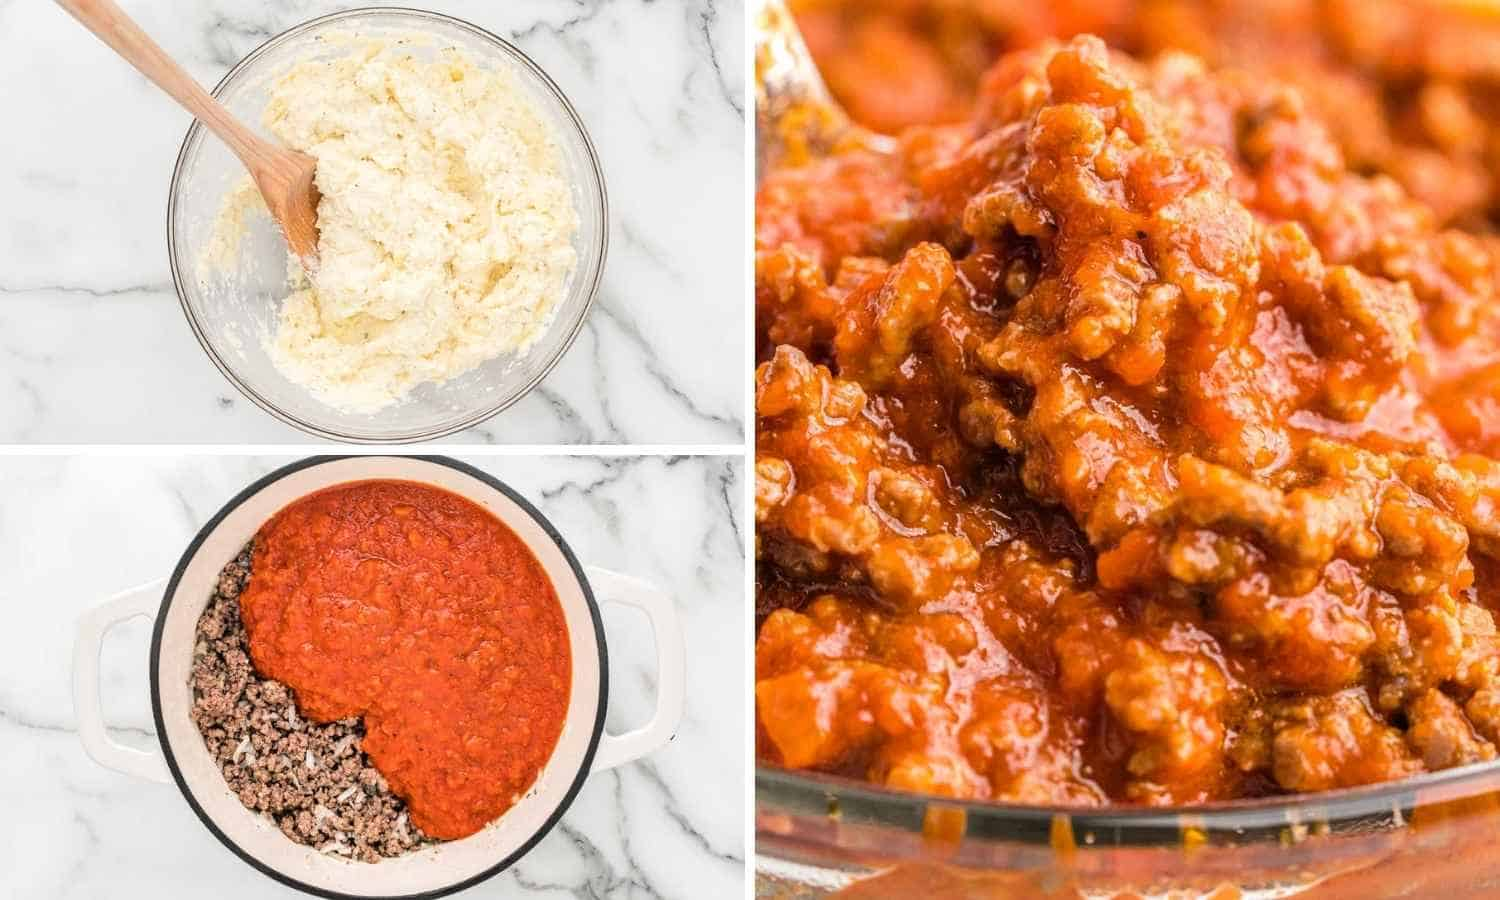 Collage of three images showing how to make ricotta mixture and meat sauce